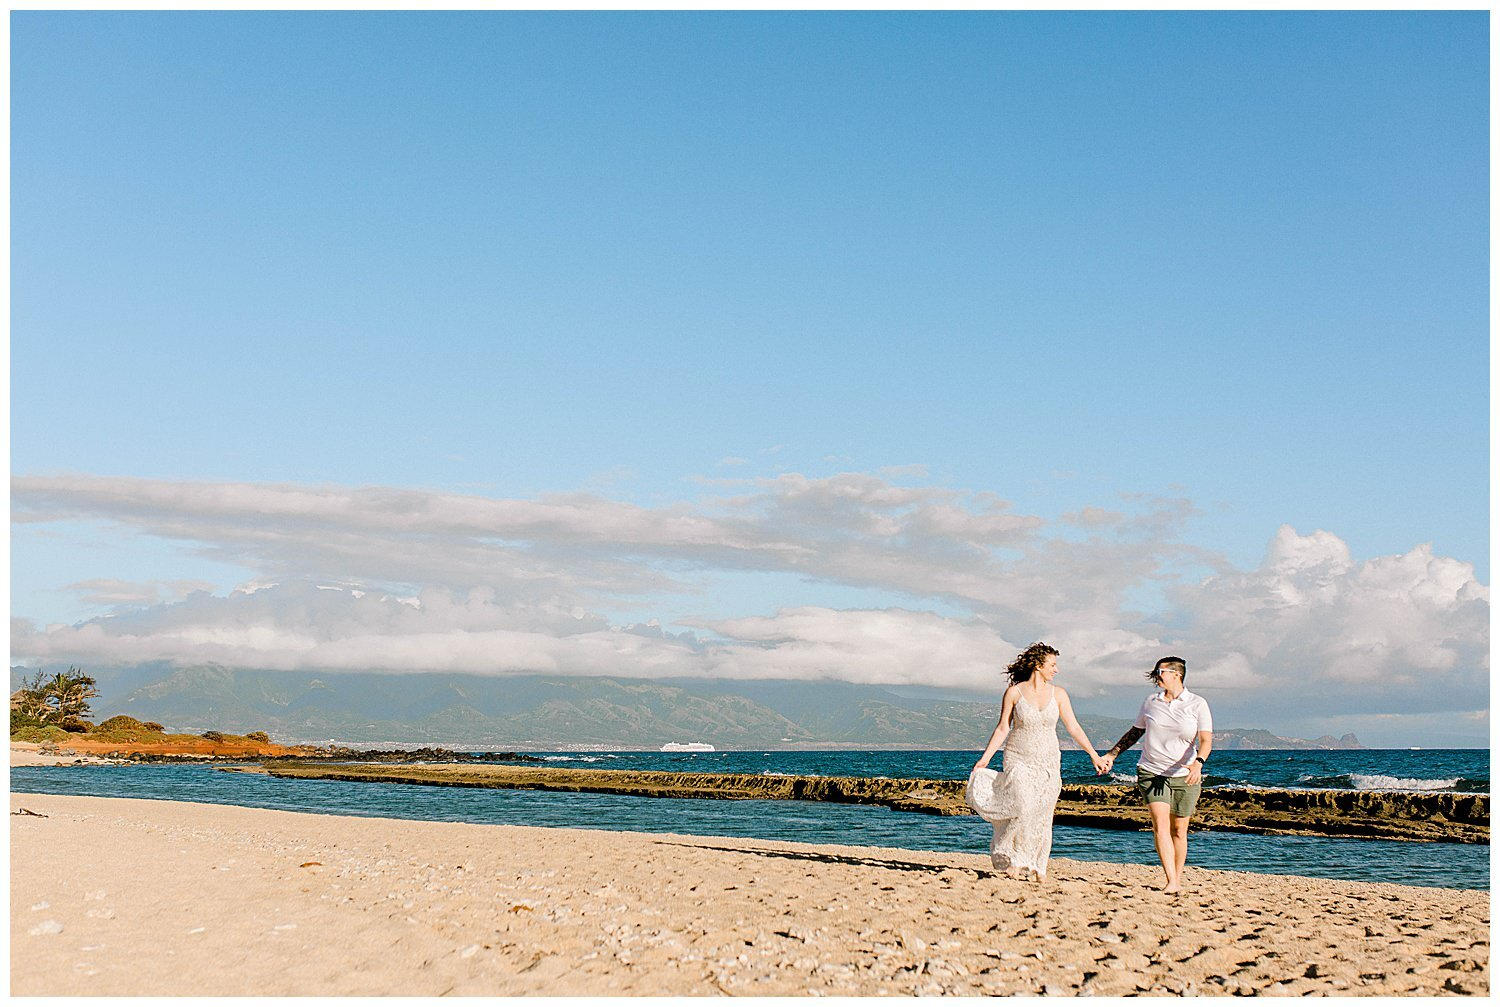 Rain was forecasted during this couple's session; however, it was a bright and sunny morning!